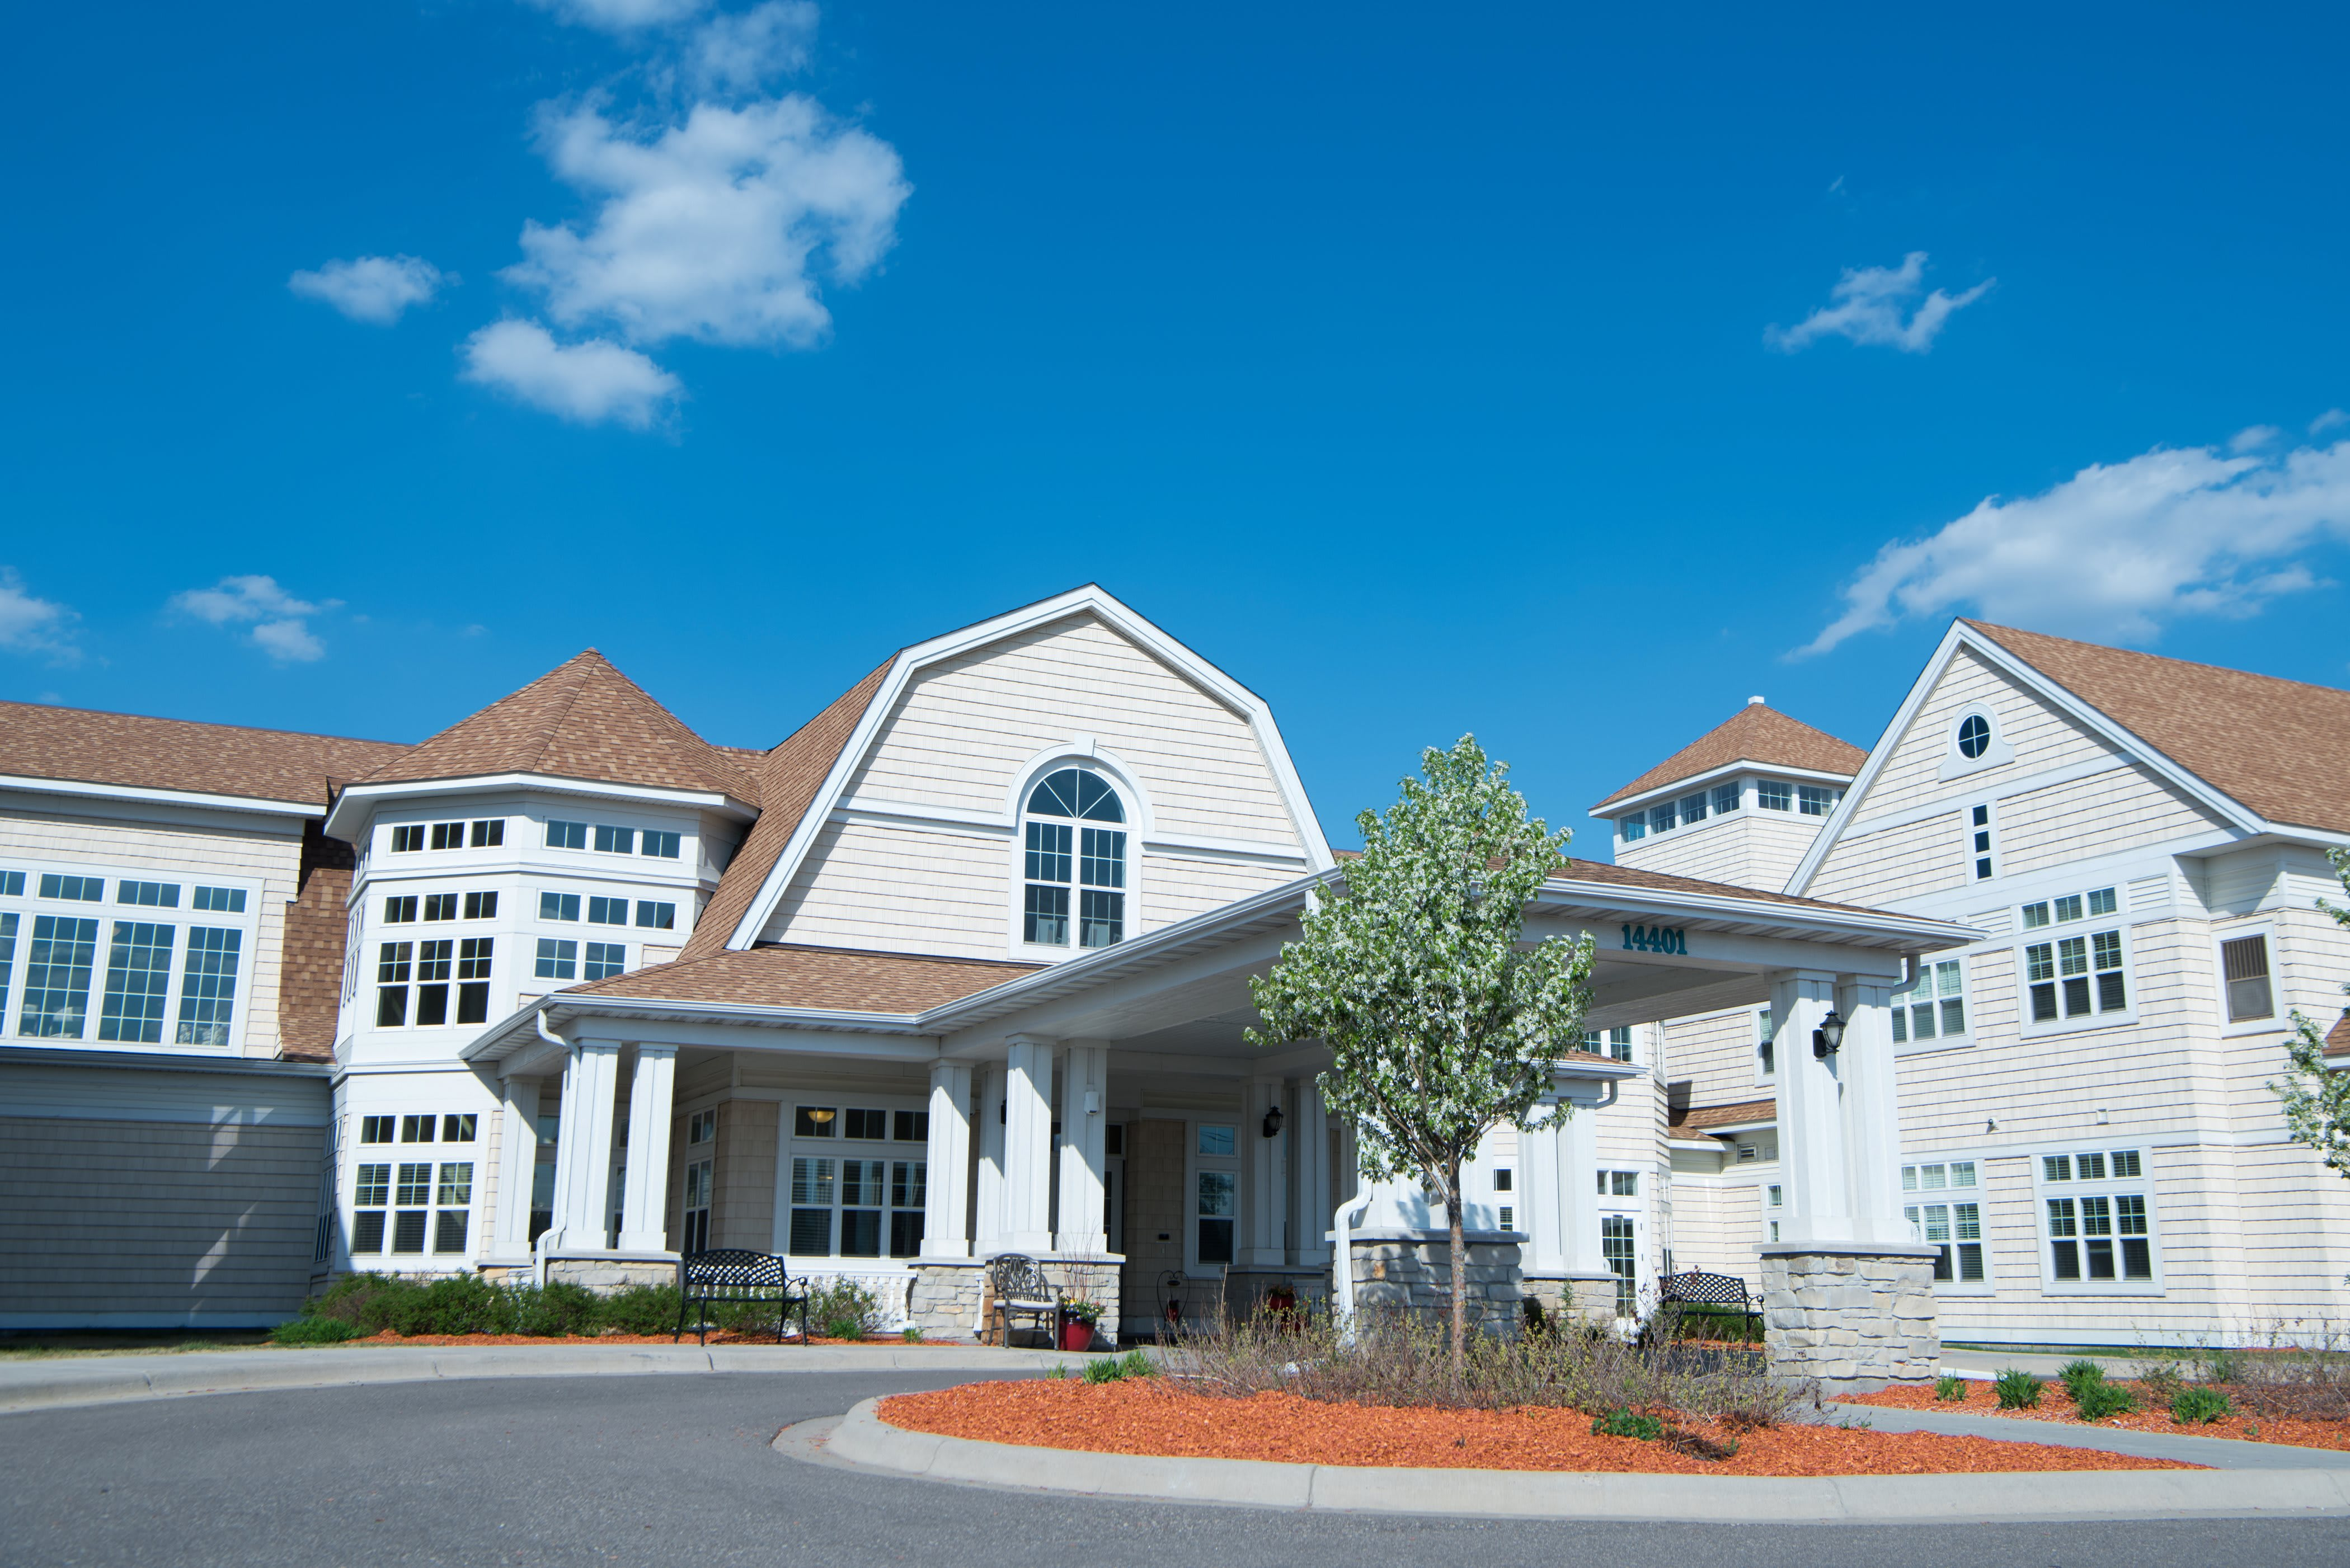 Photo 1 of Stoney River Assisted Living and Memory Care